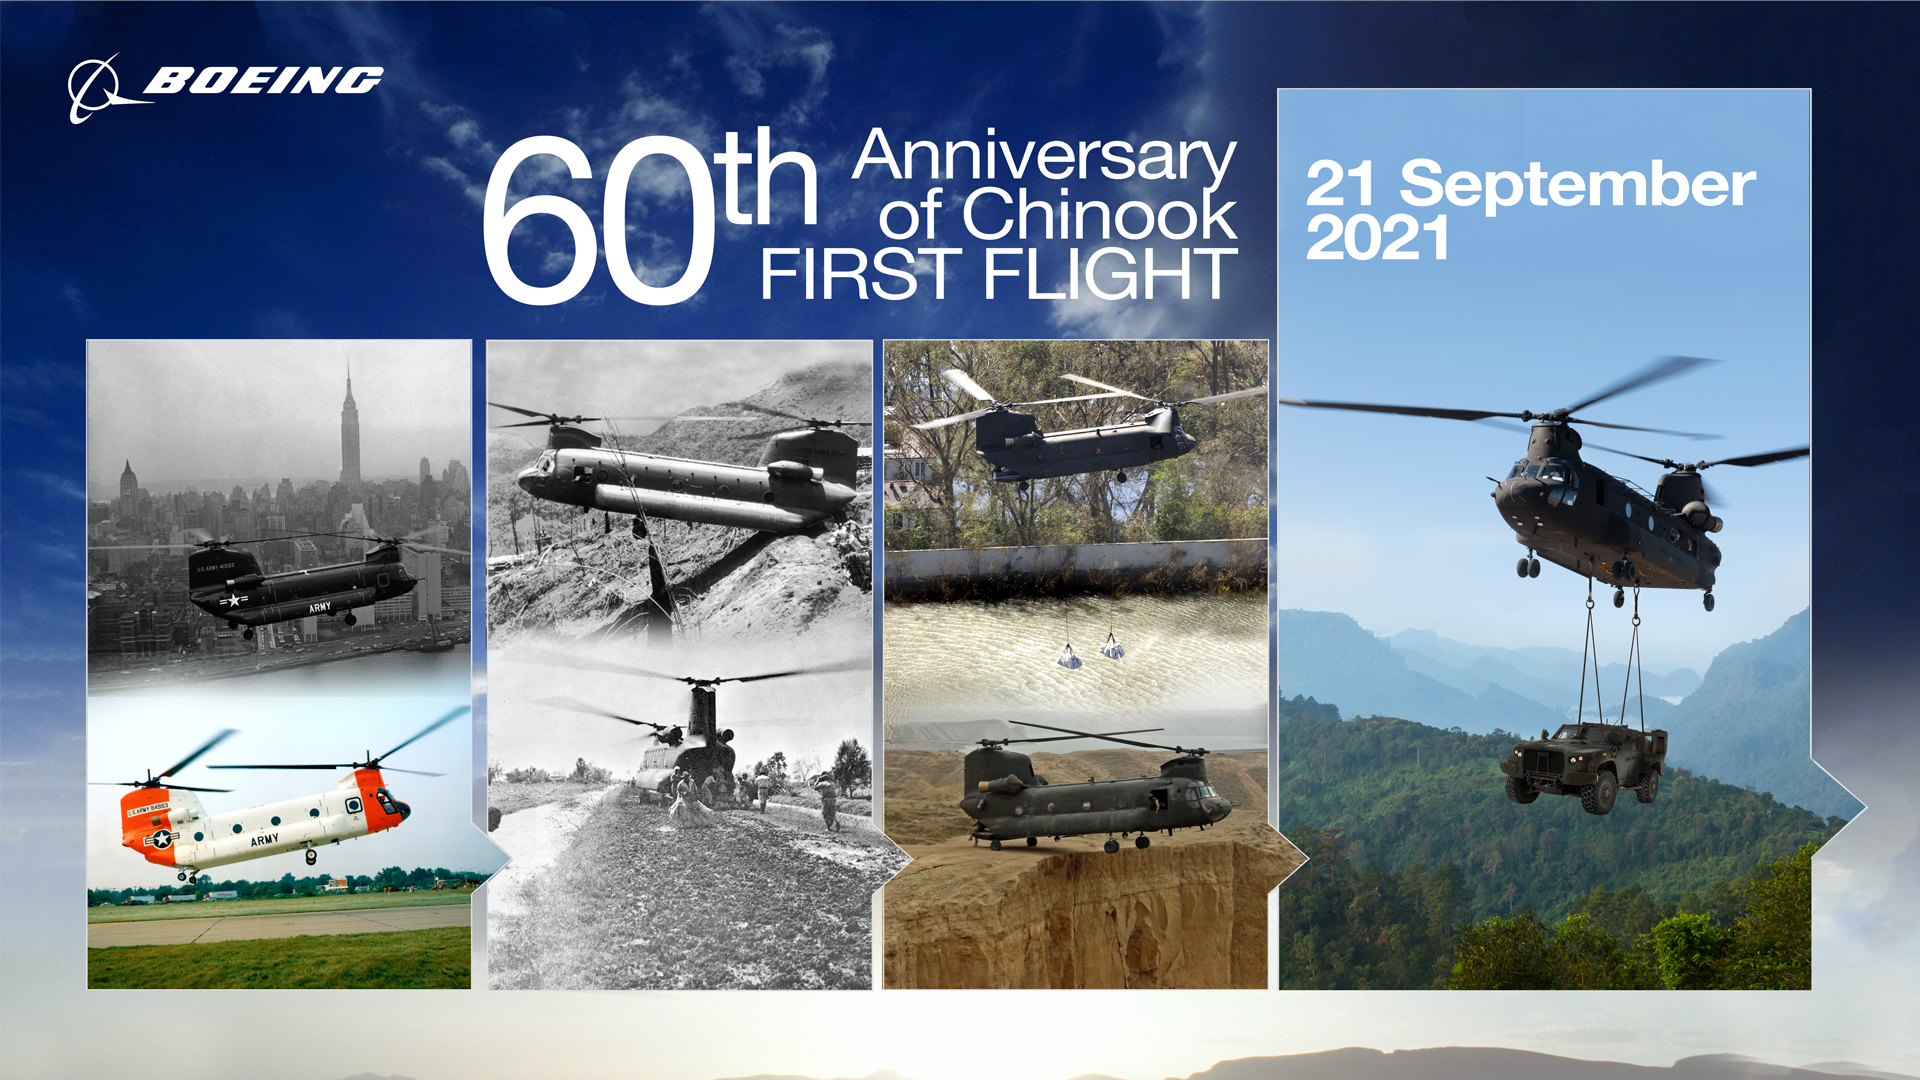 Display image with photos of the Chinook through its 60 year history